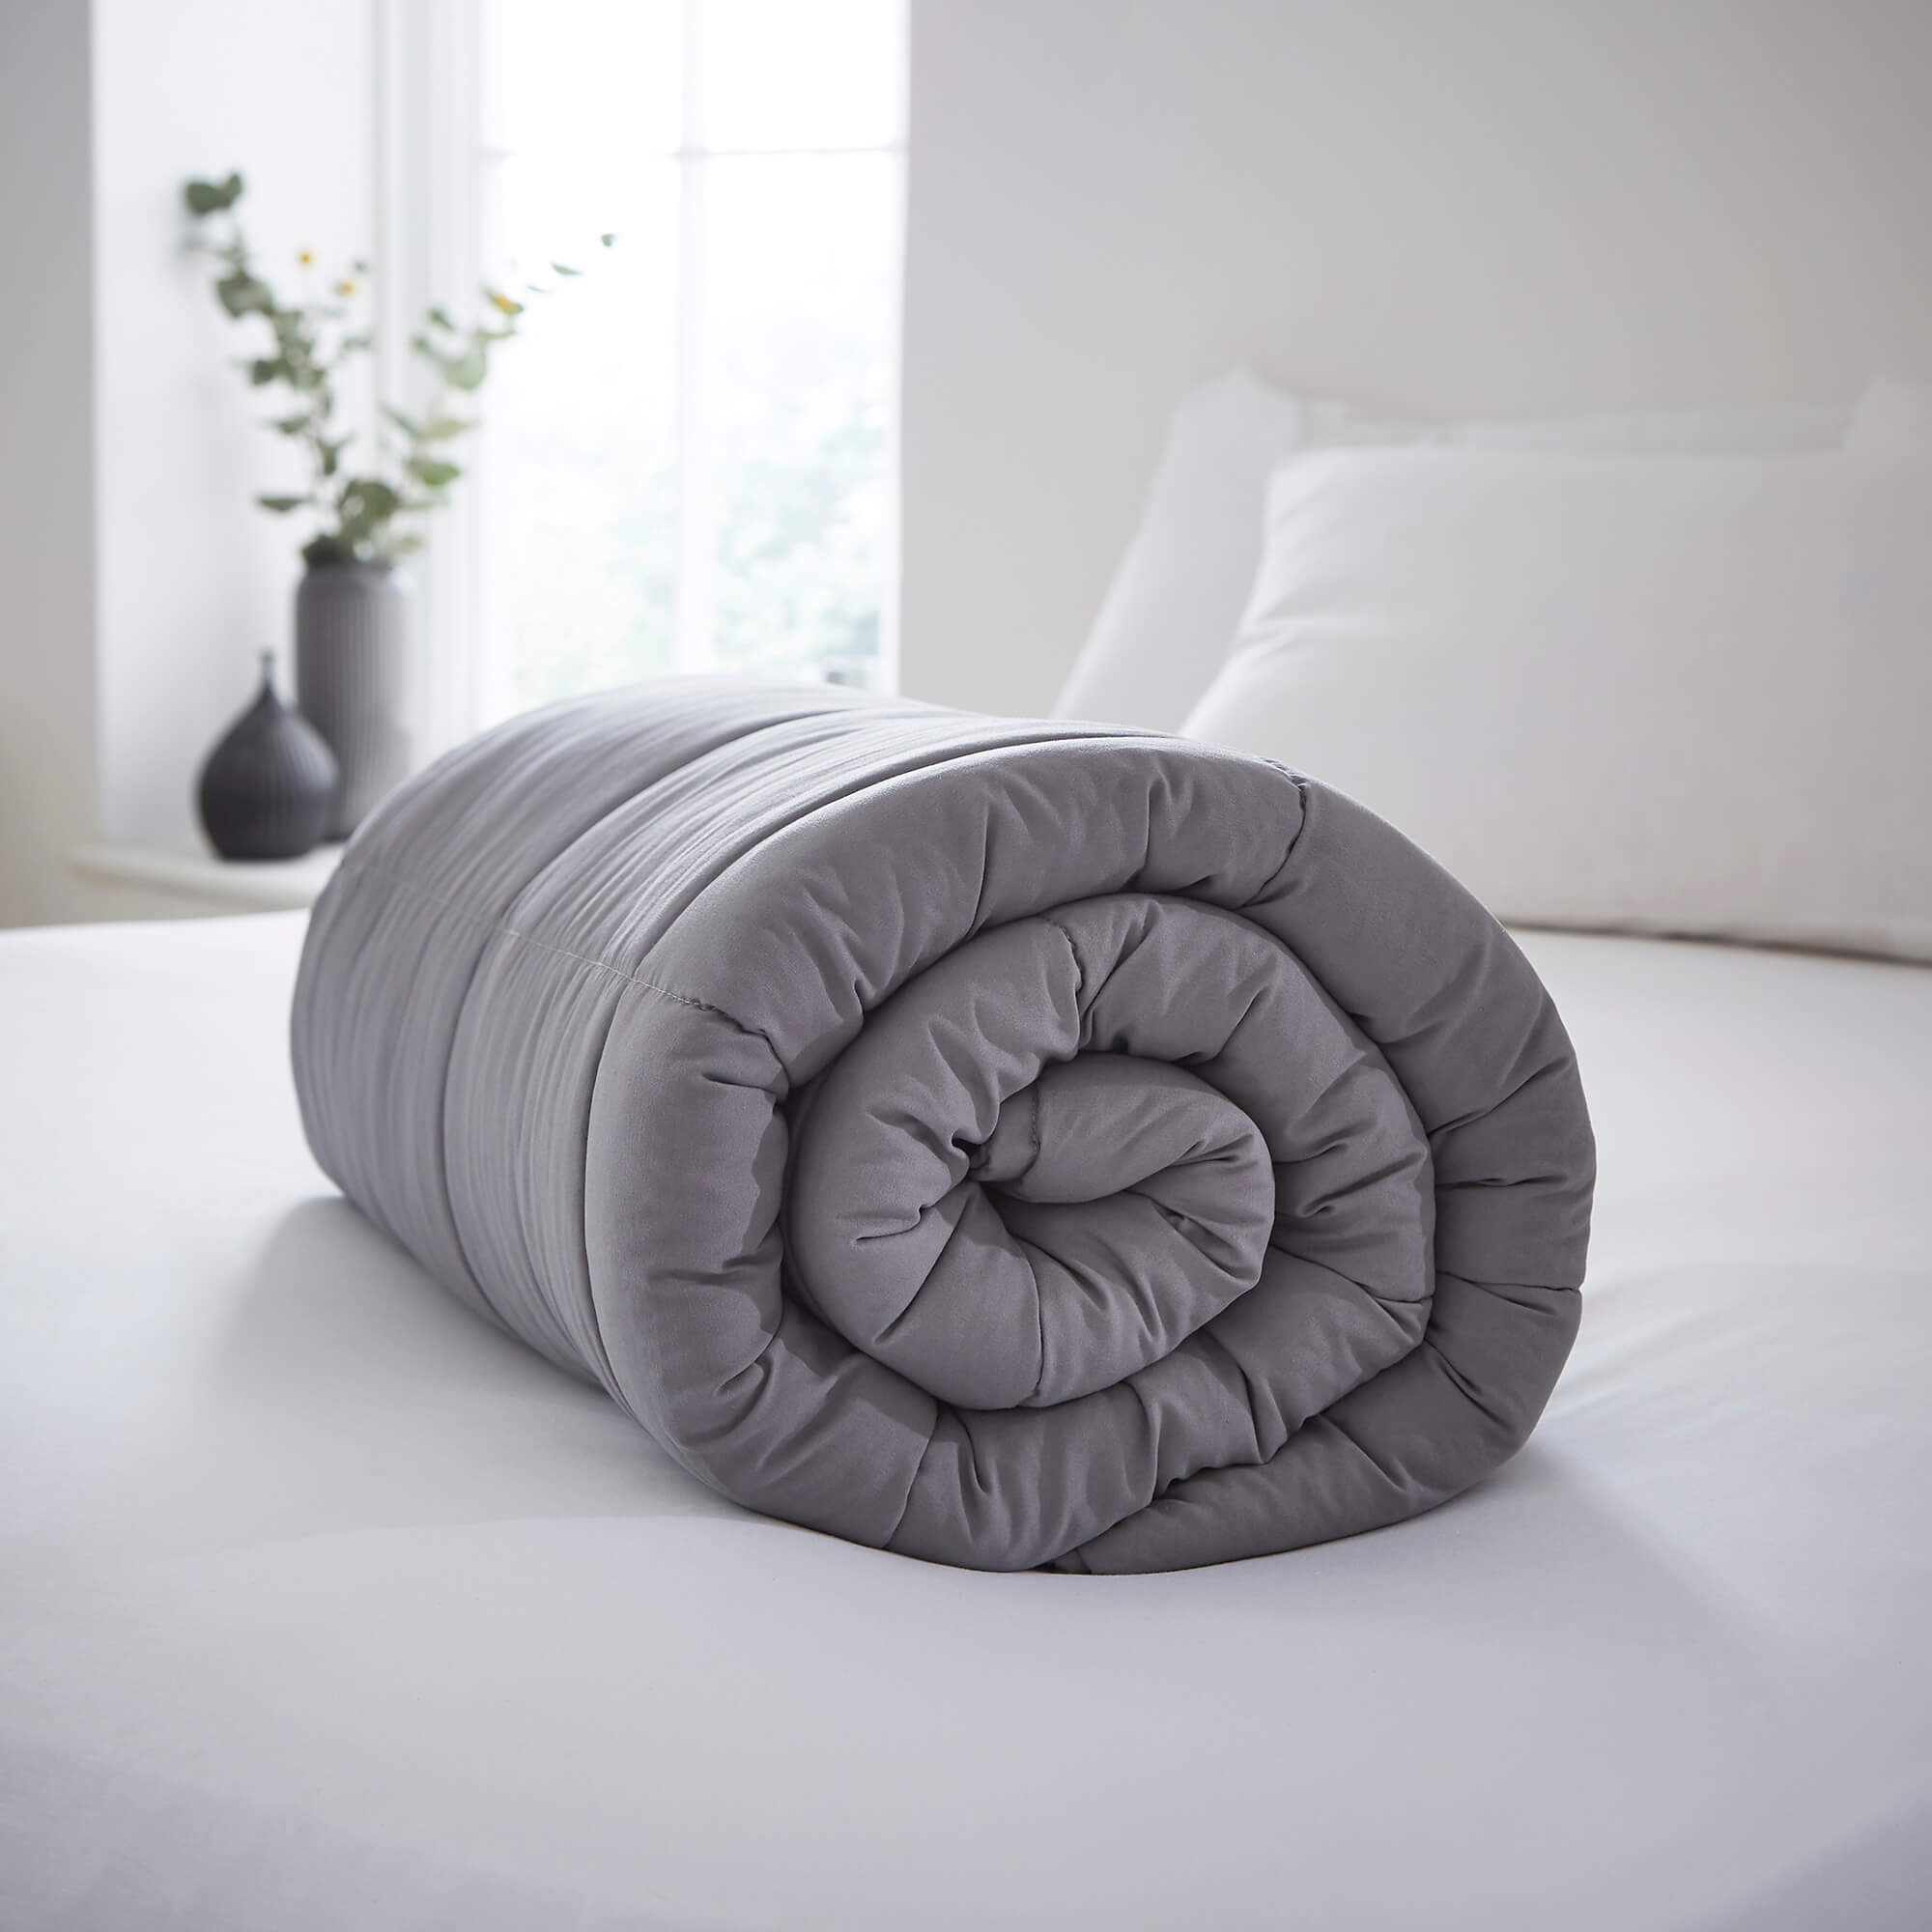 A rolled up weighted blanket